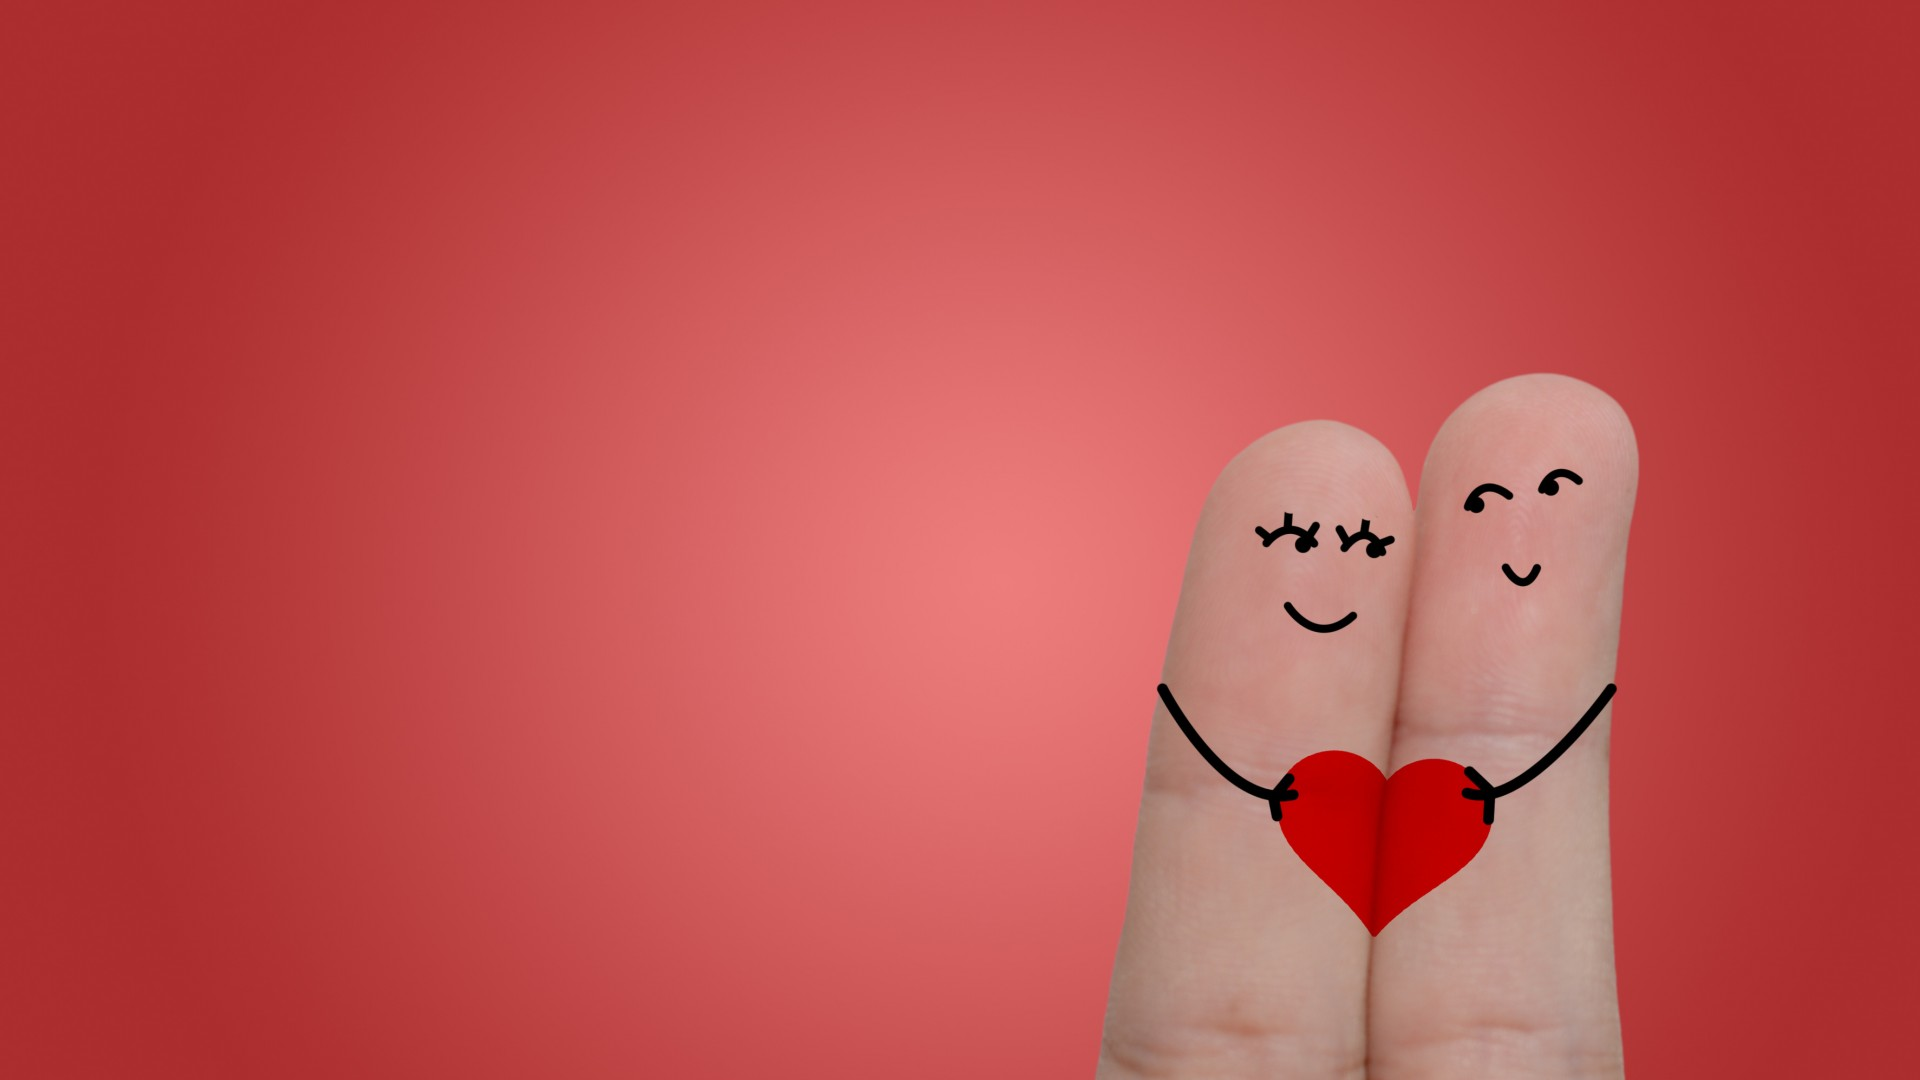 Cute I Love You Wallpaper Pictures to Pin 1920x1080